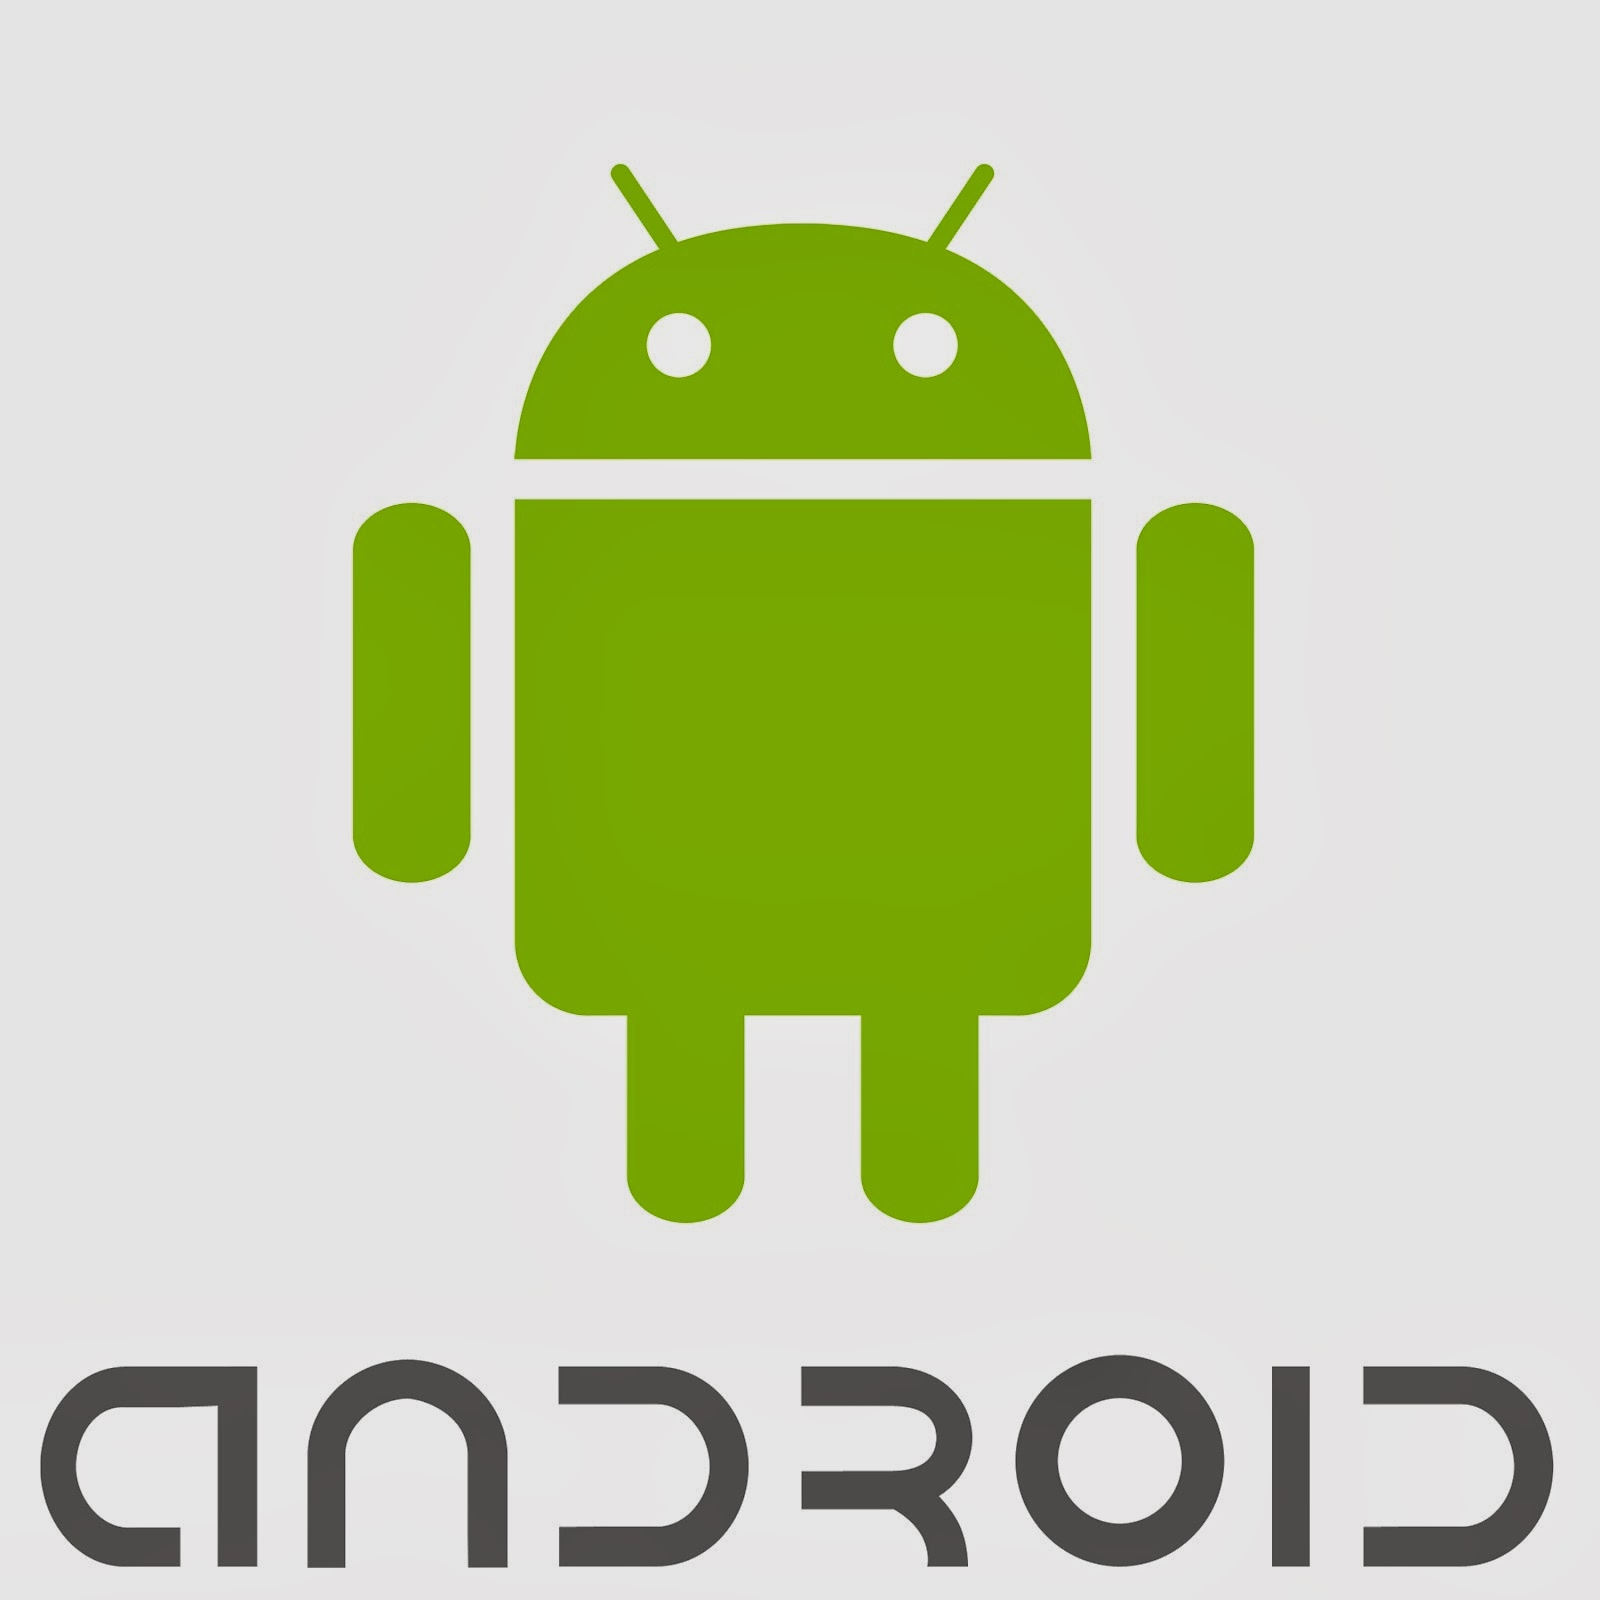 how to avoid anr in android